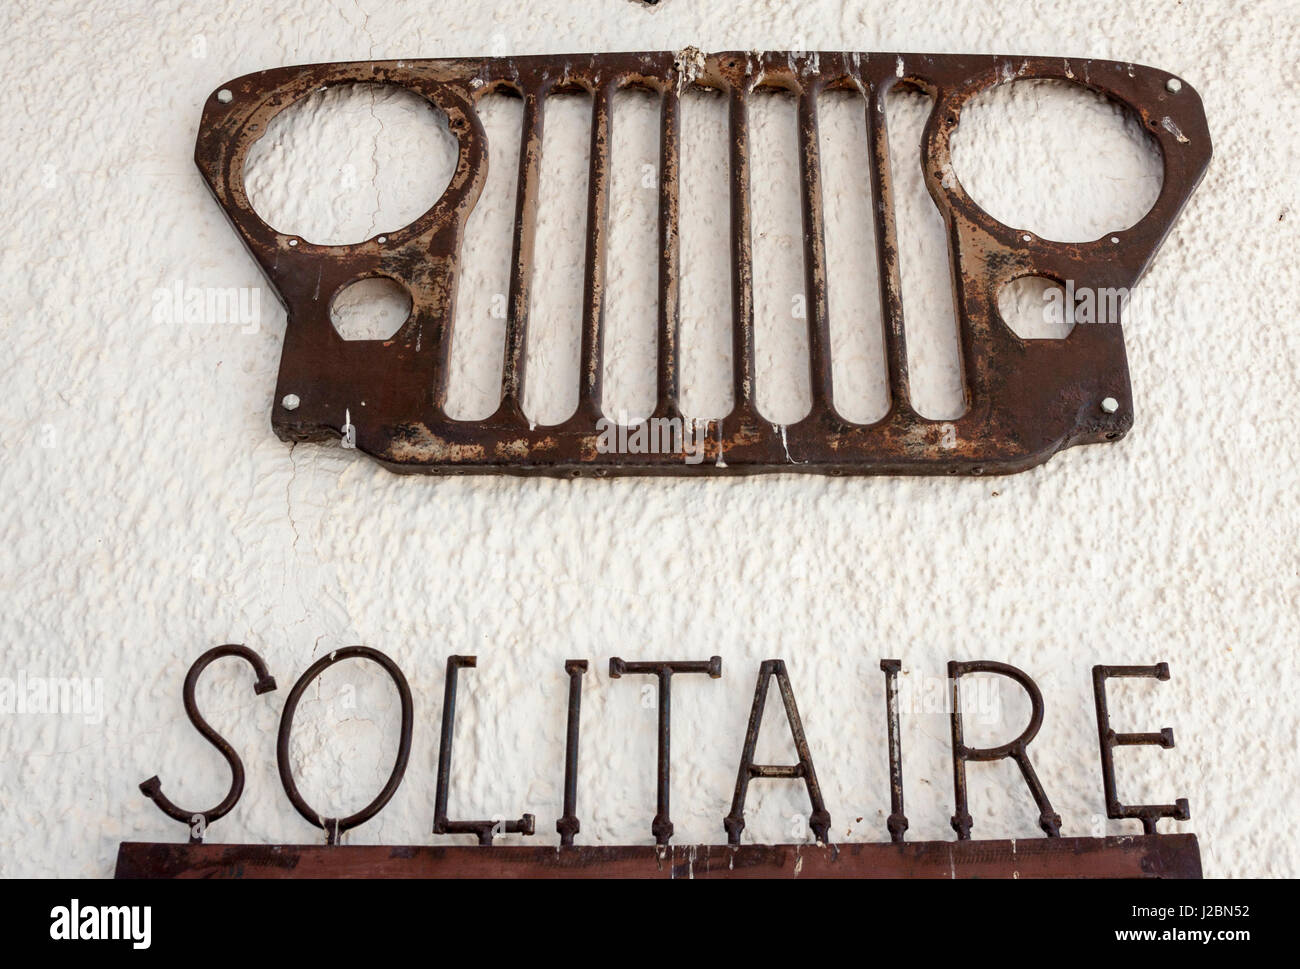 Africa, Namibia, Solitaire, Solitaire Country Lodge. Metal sign and vehicle grille on wall. Credit as: Wendy Kaveney - Stock Image